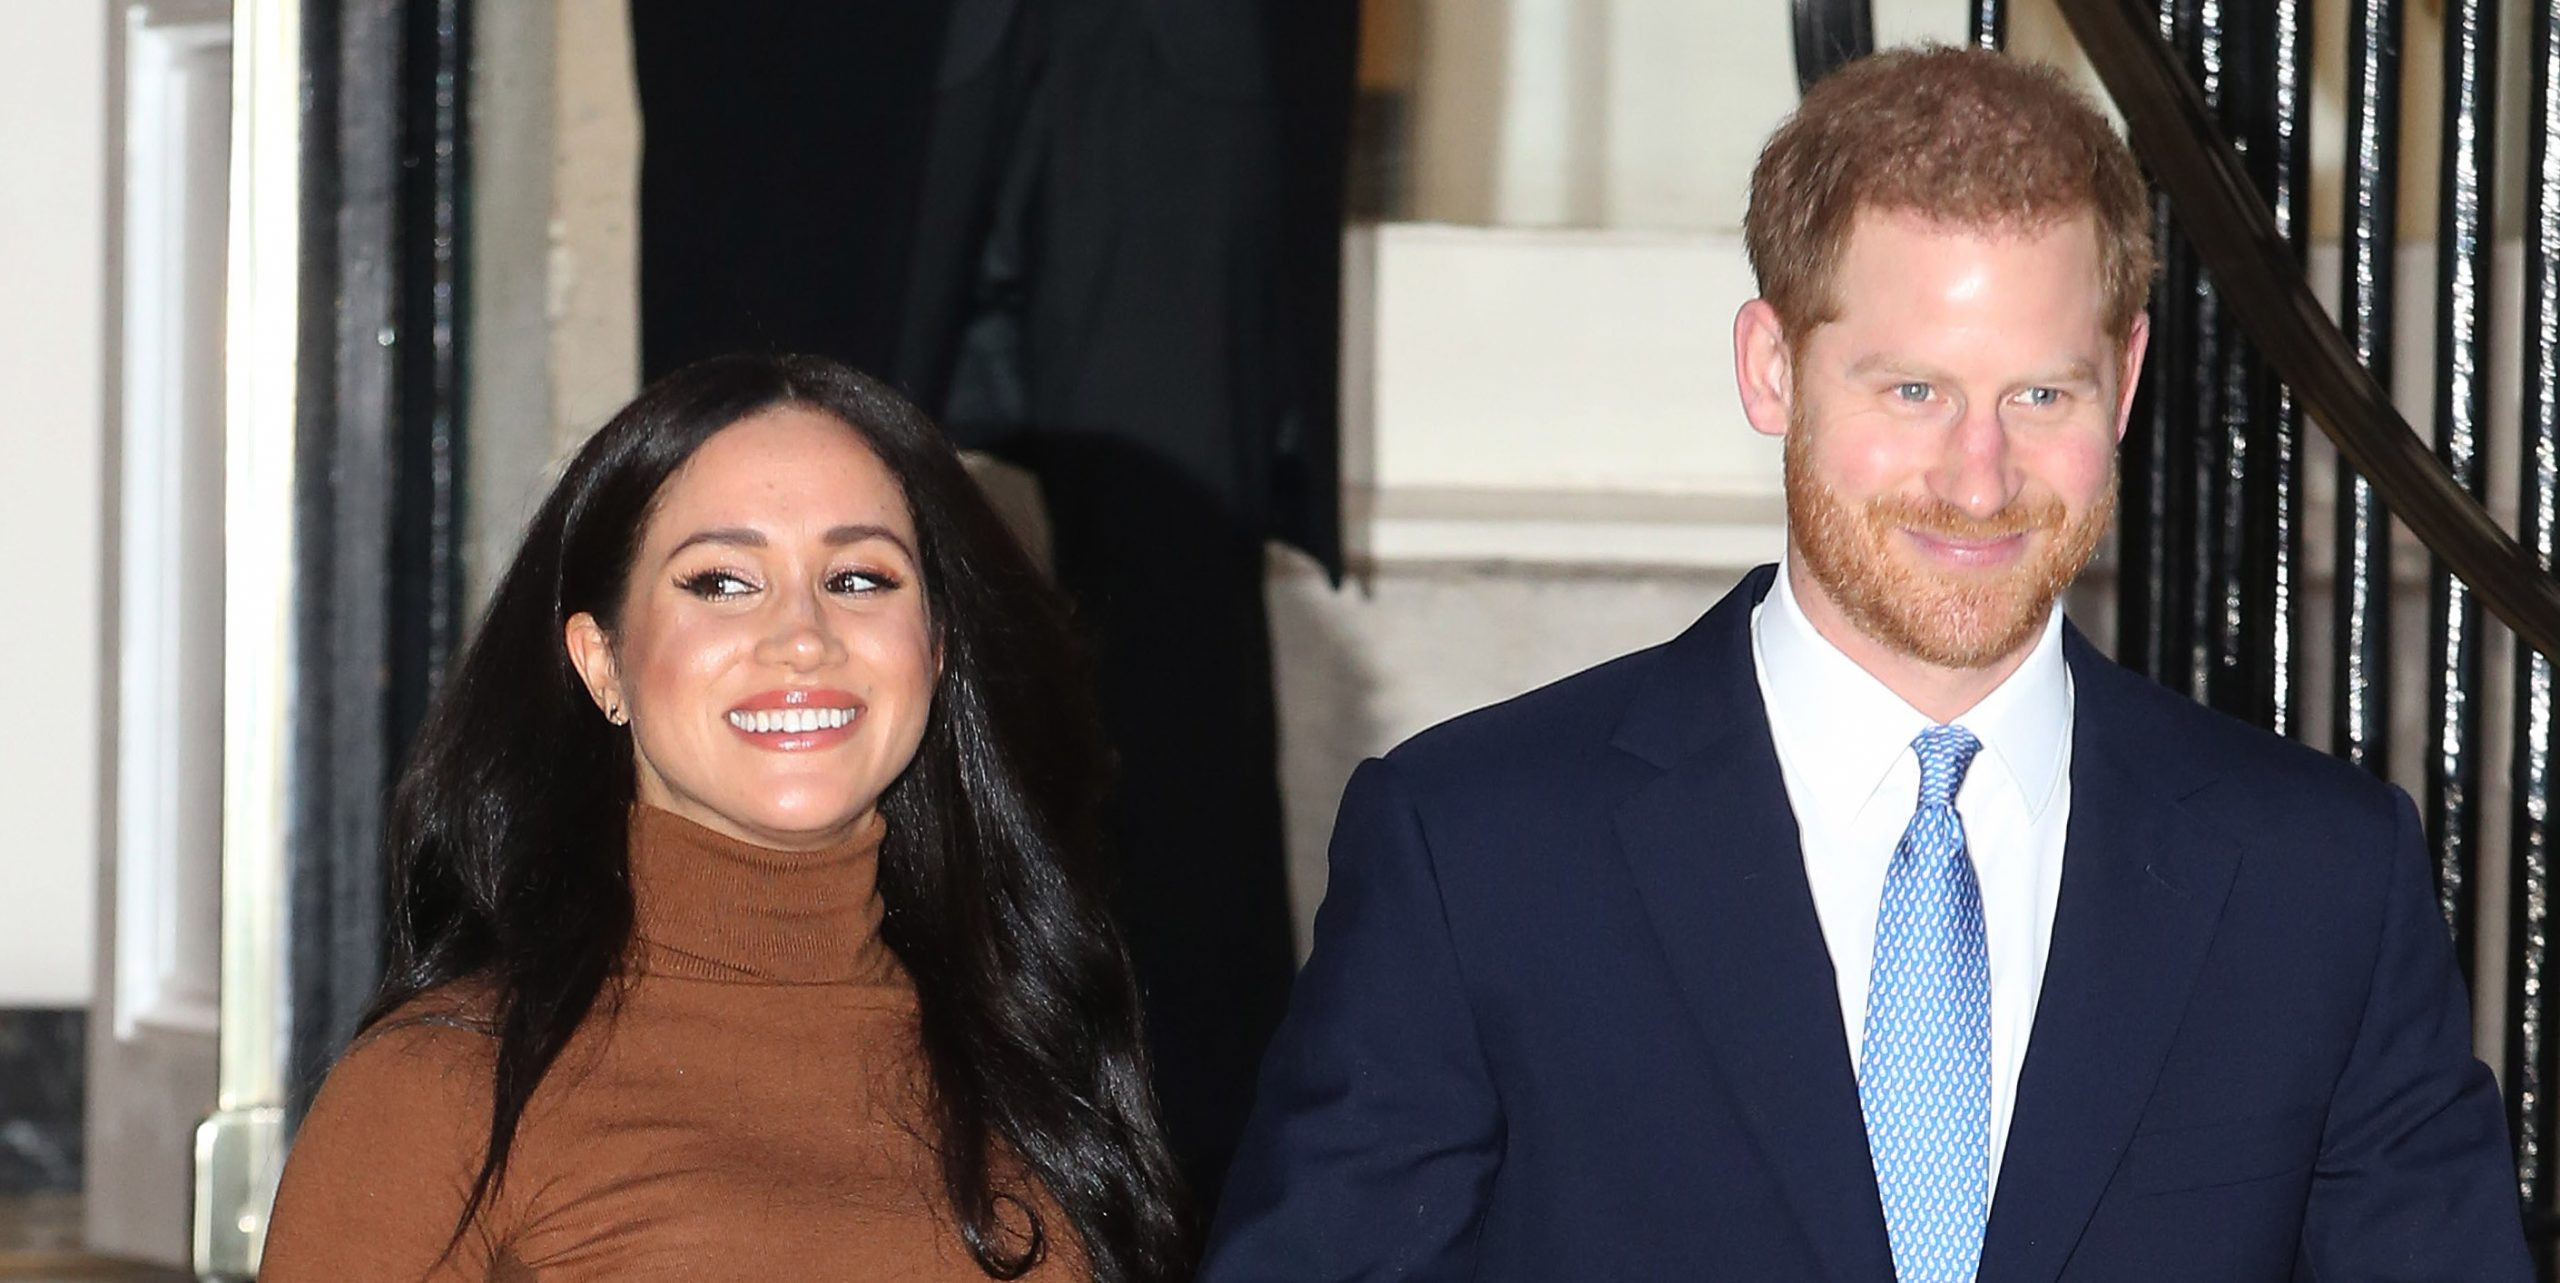 Meghan and Harry 'will rake in £1billion once they split from royal family,' expert claims